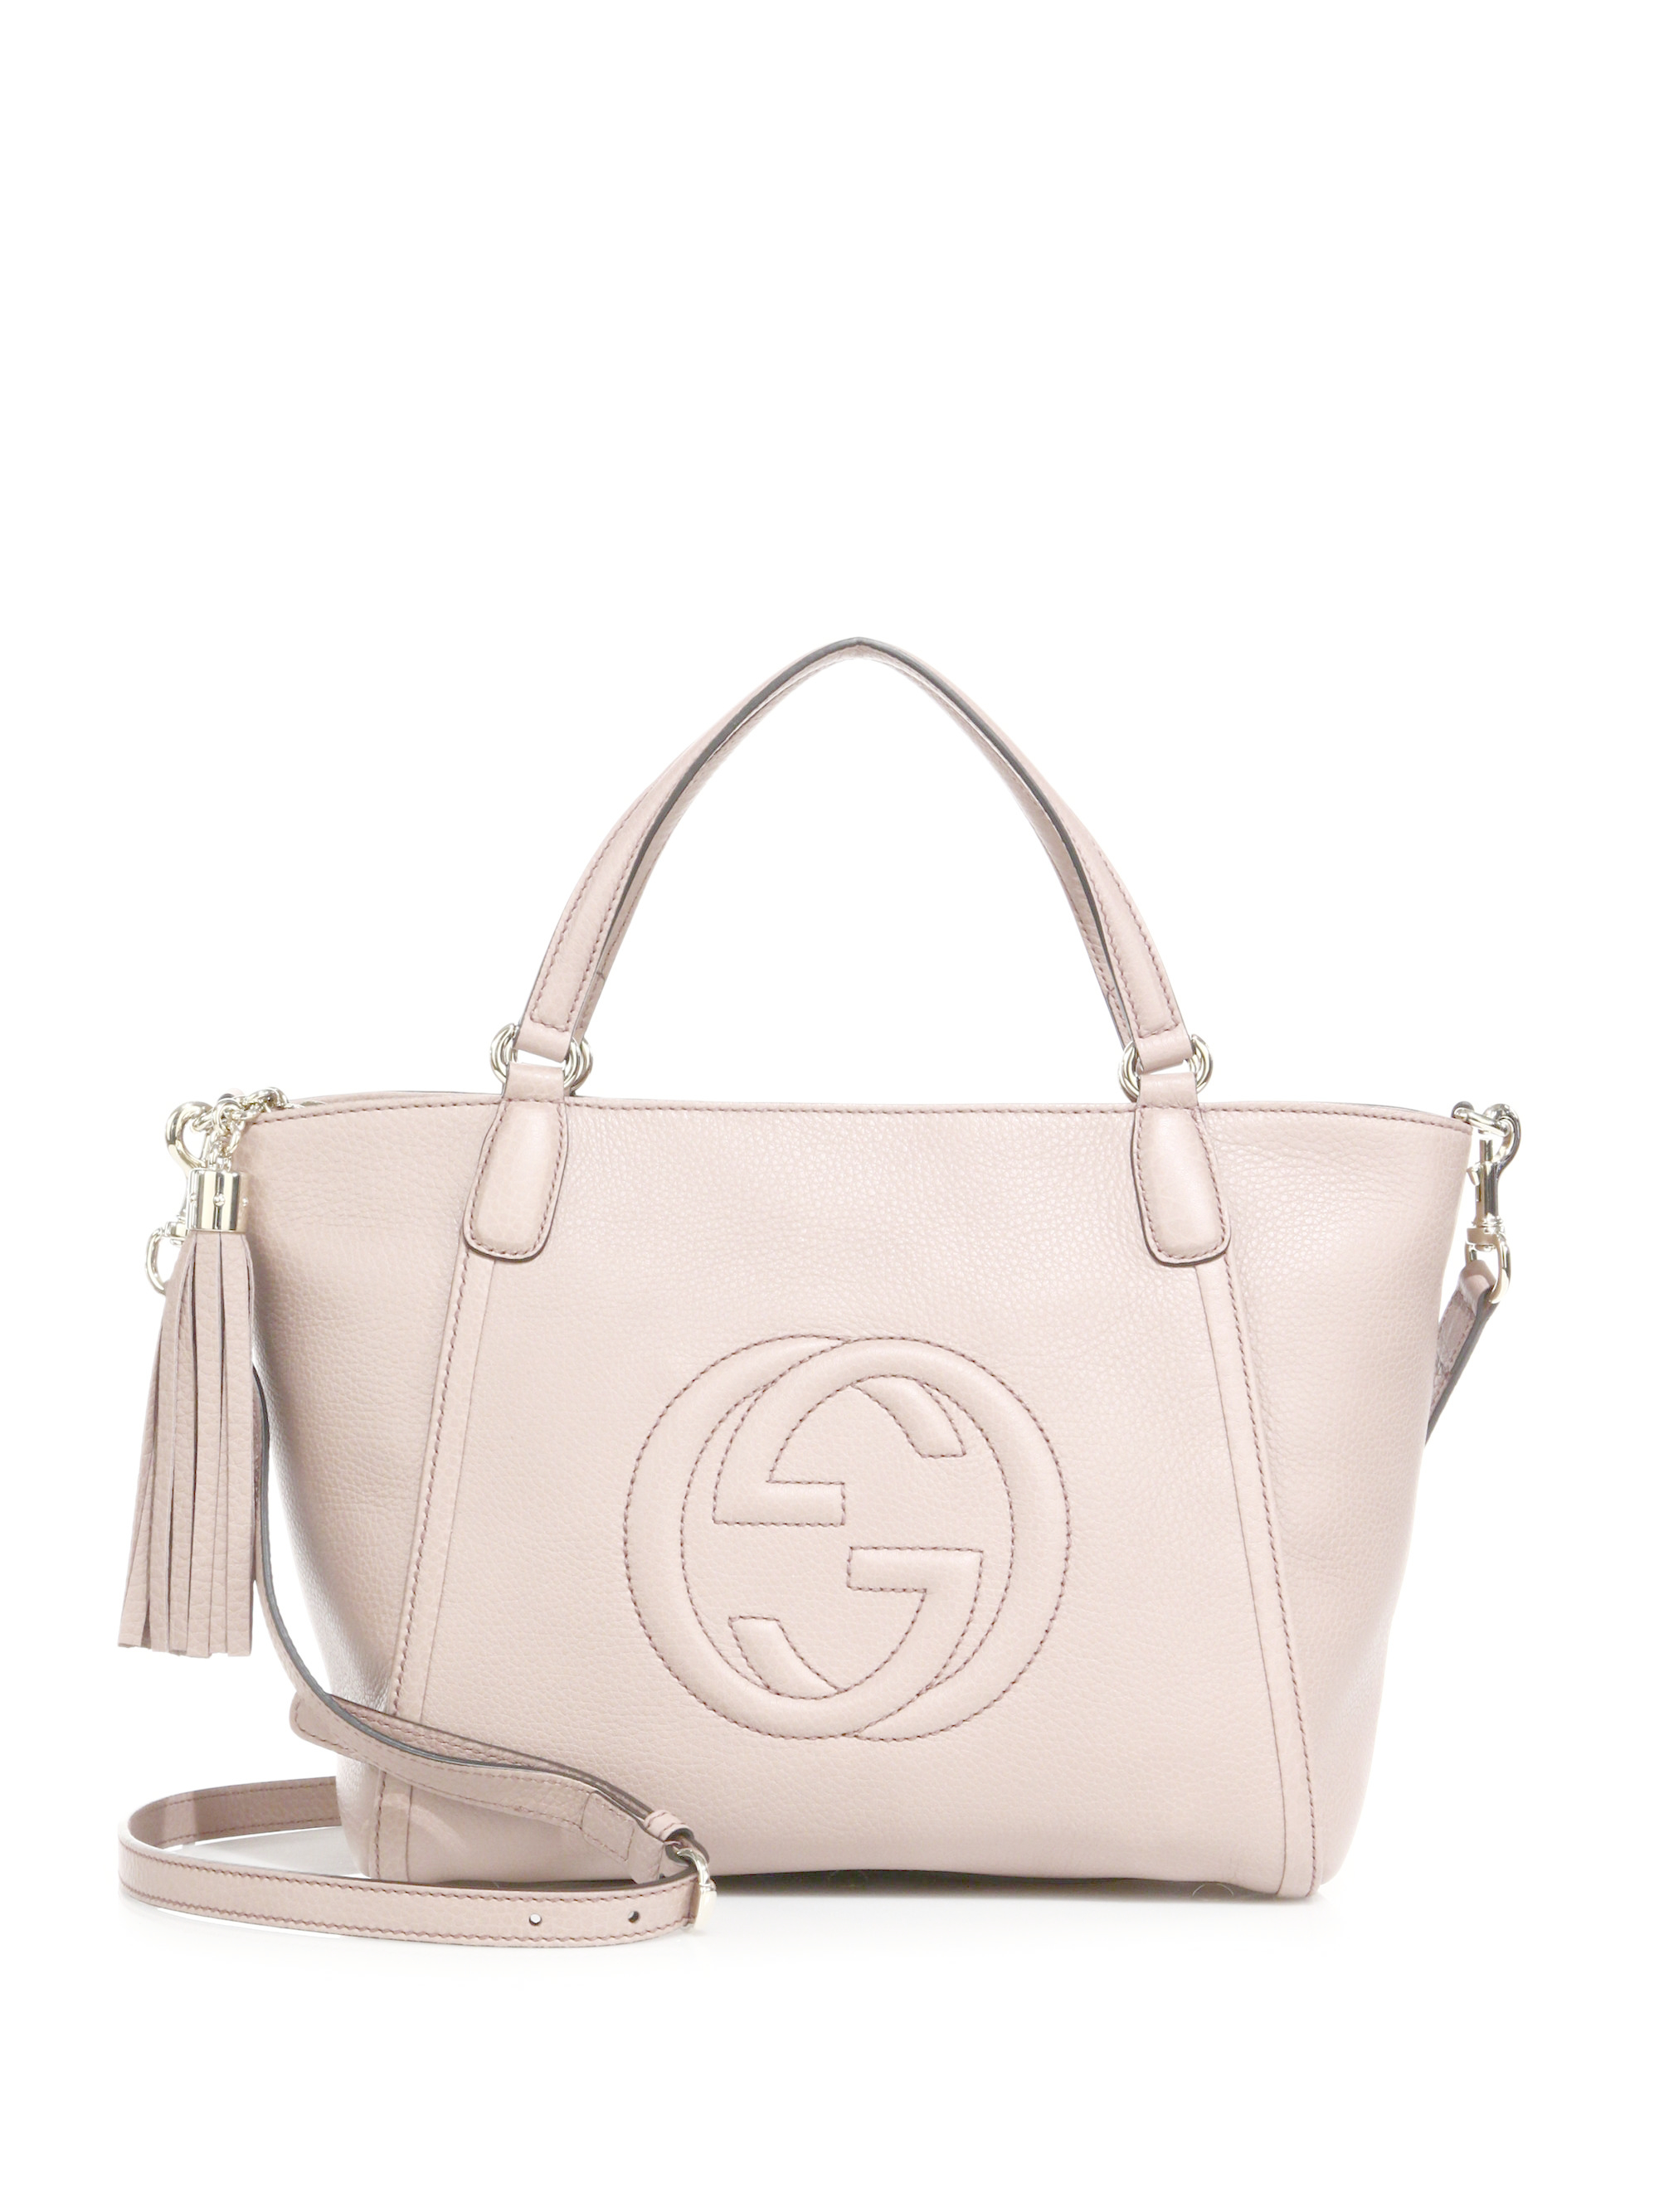 0ac64615989d Gallery. Previously sold at: Saks Fifth Avenue · Women's Gucci Soho Bag